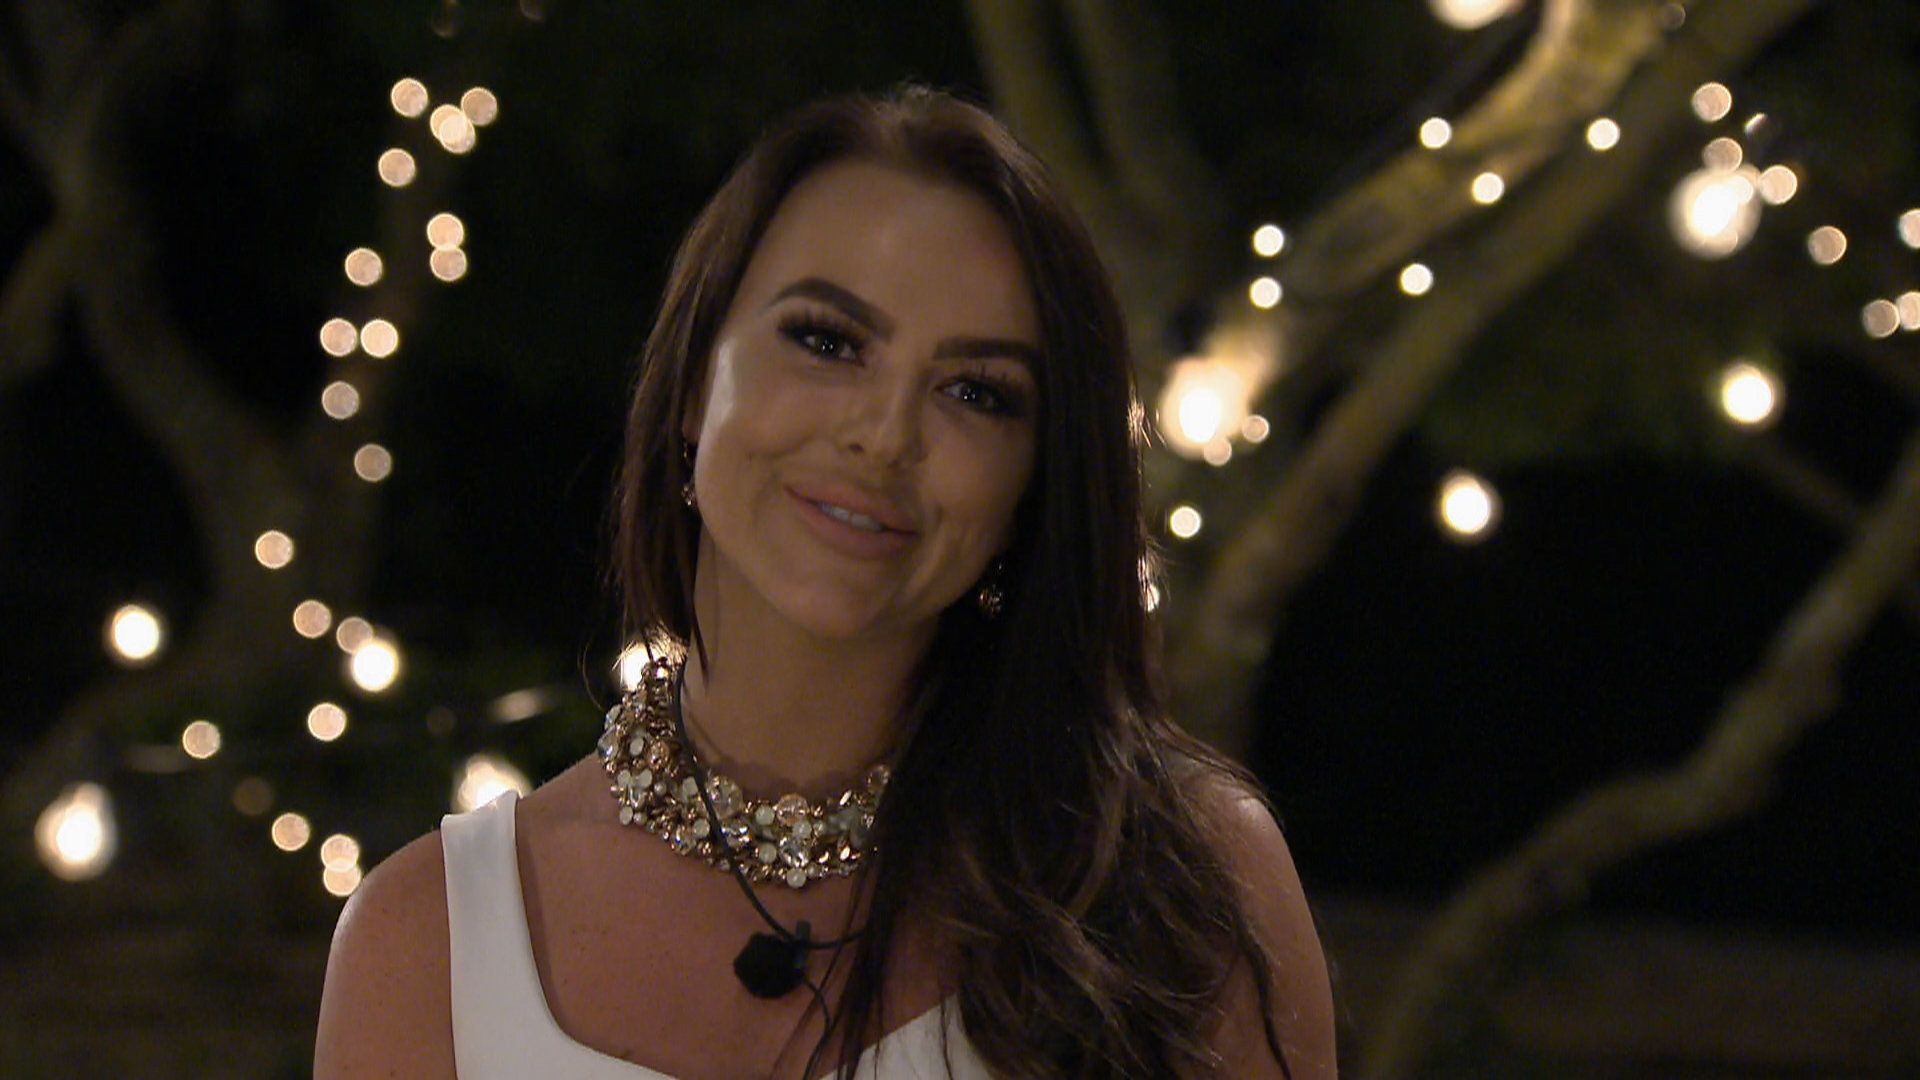 Love Island's Rosie Didn't Have A Kind Word To Say About Adam As She Left The